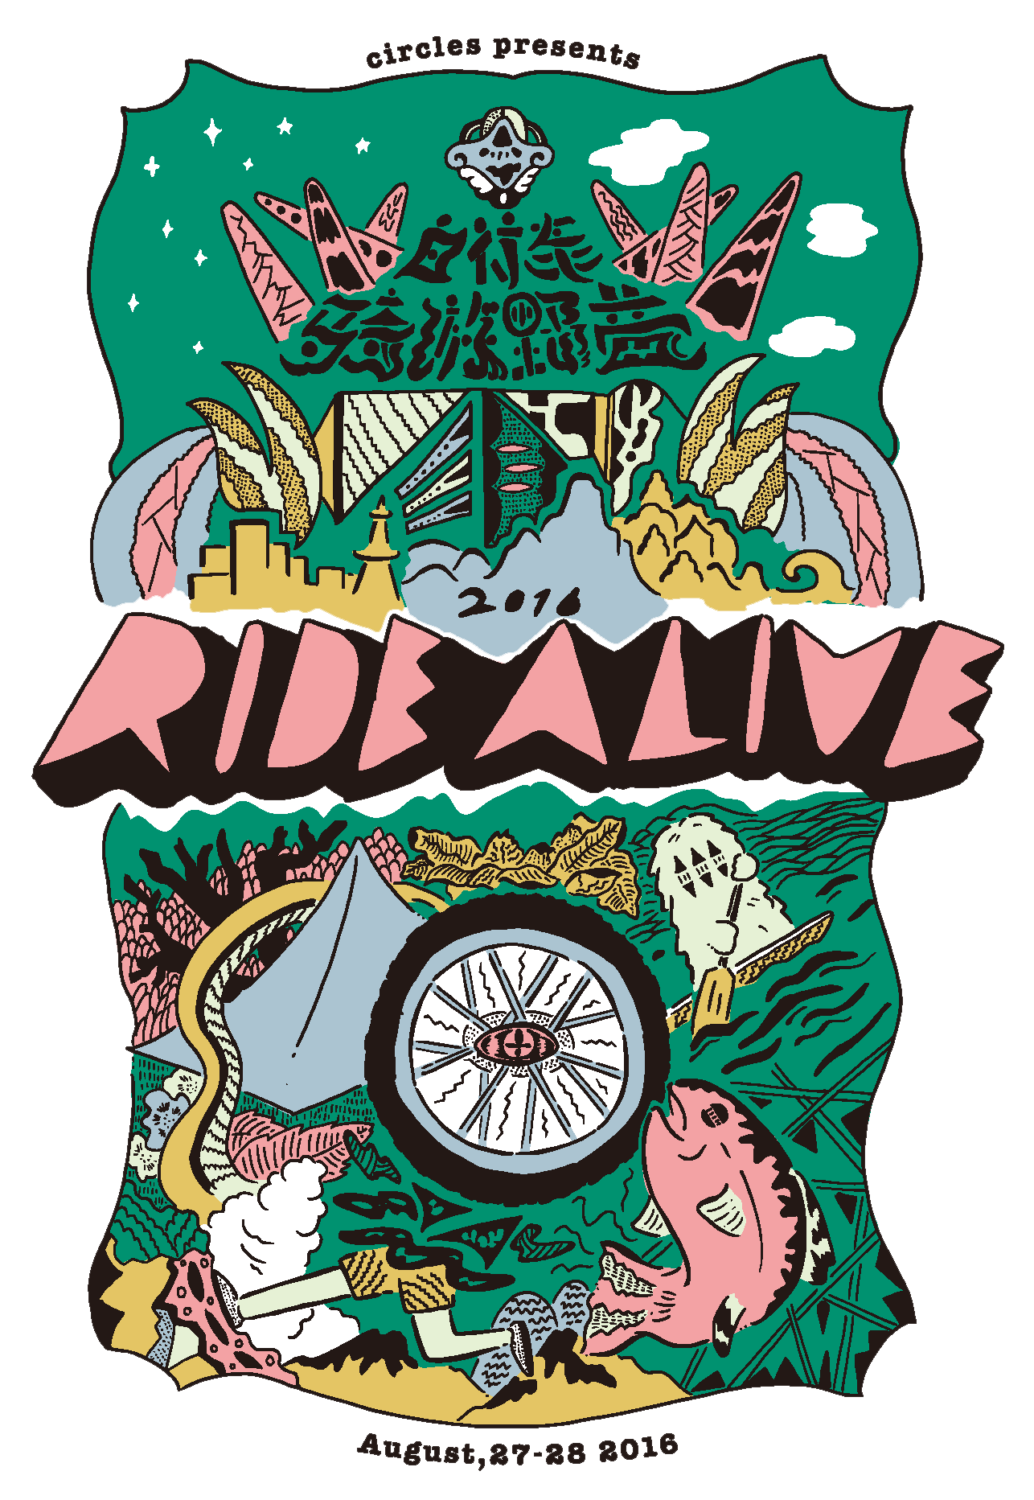 ridealive 2016 ral